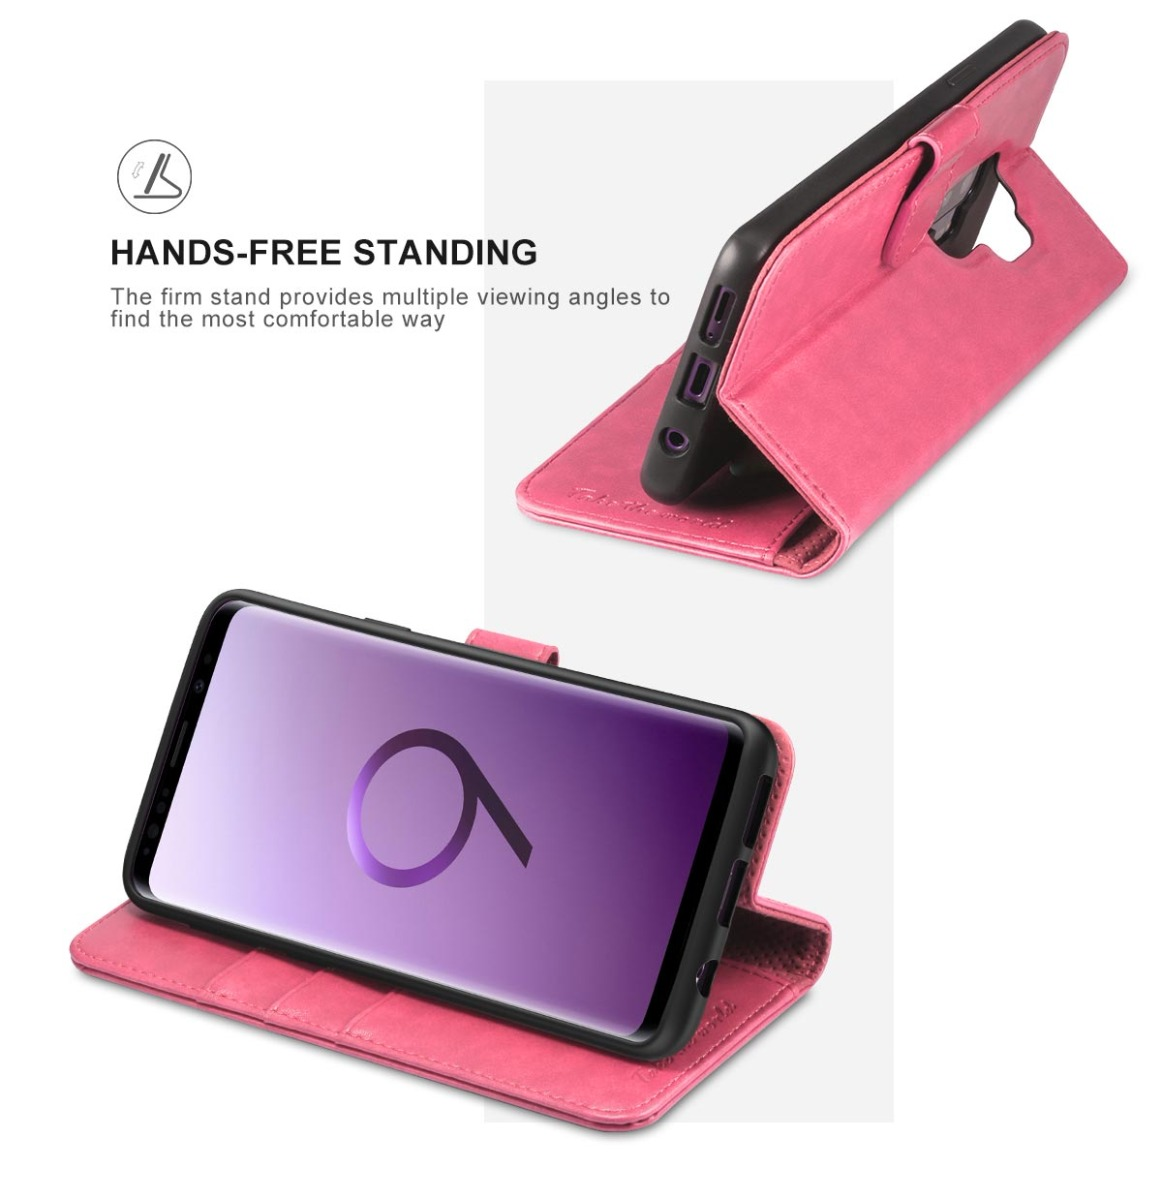 TUCCH Samsung S9 Plus Wallet Case, Kickstand, Magnetic Closure